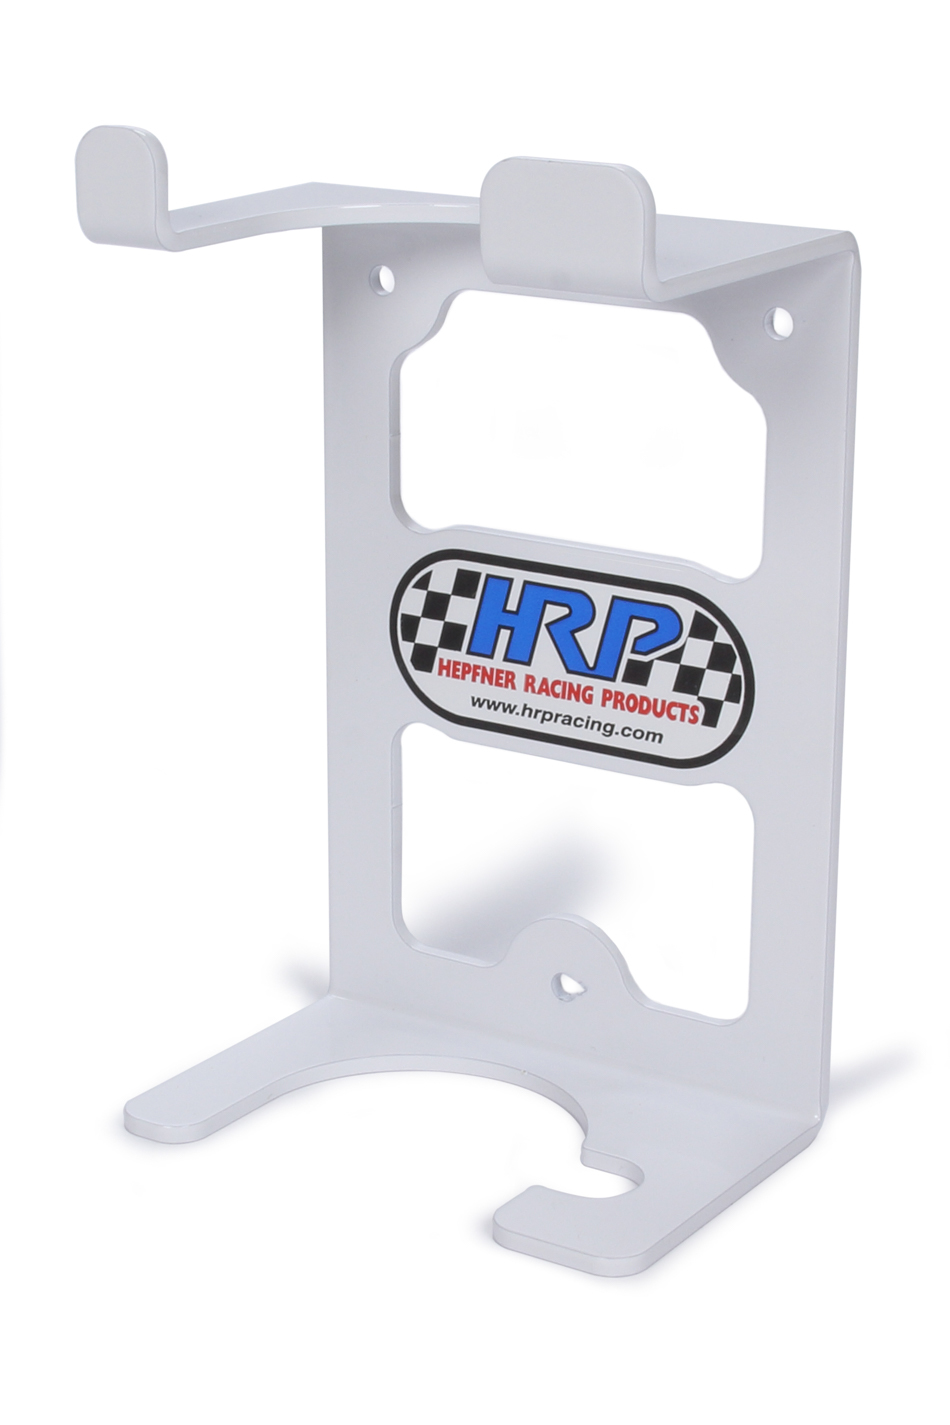 Hepfner Racing Products HRP6298-WHT Grease Gun Rack, Wall Mount, Aluminum, White Powder Coat, Each